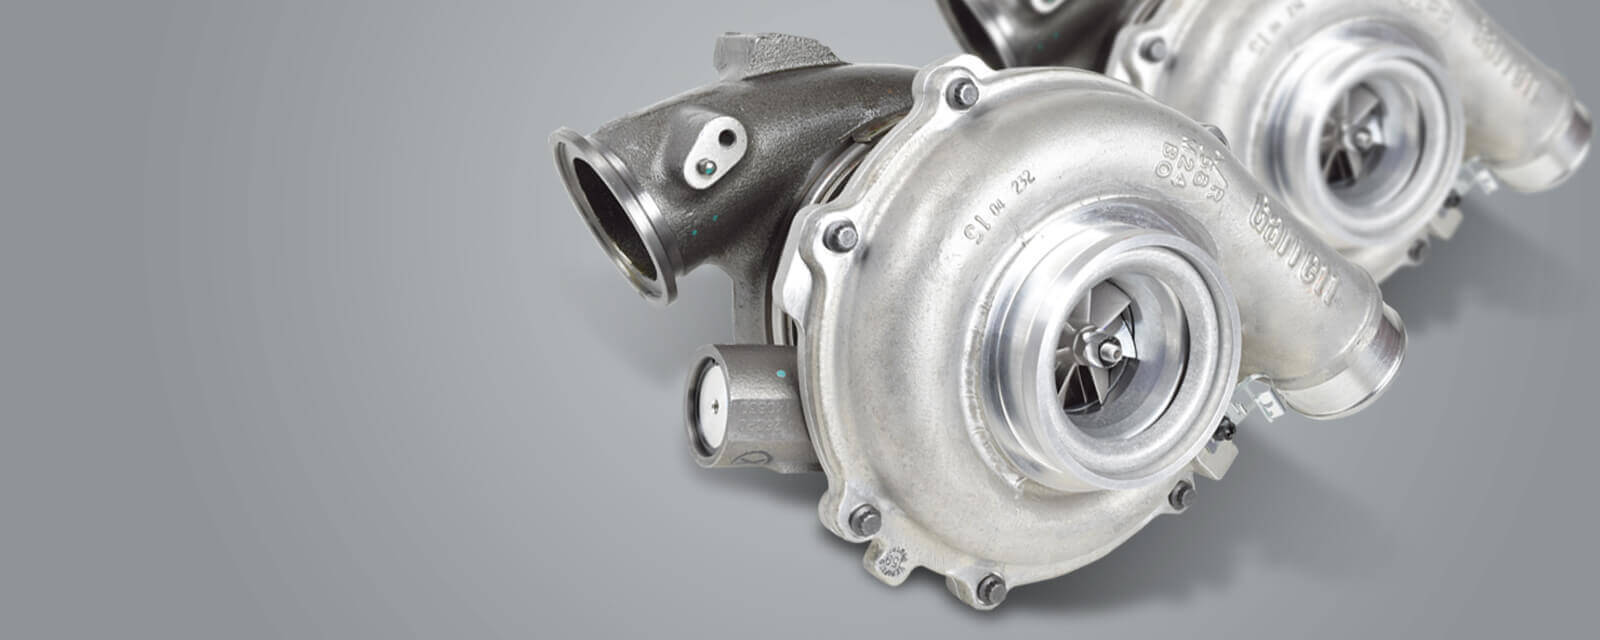 Garrett Turbochargers for 6 Liter Fords